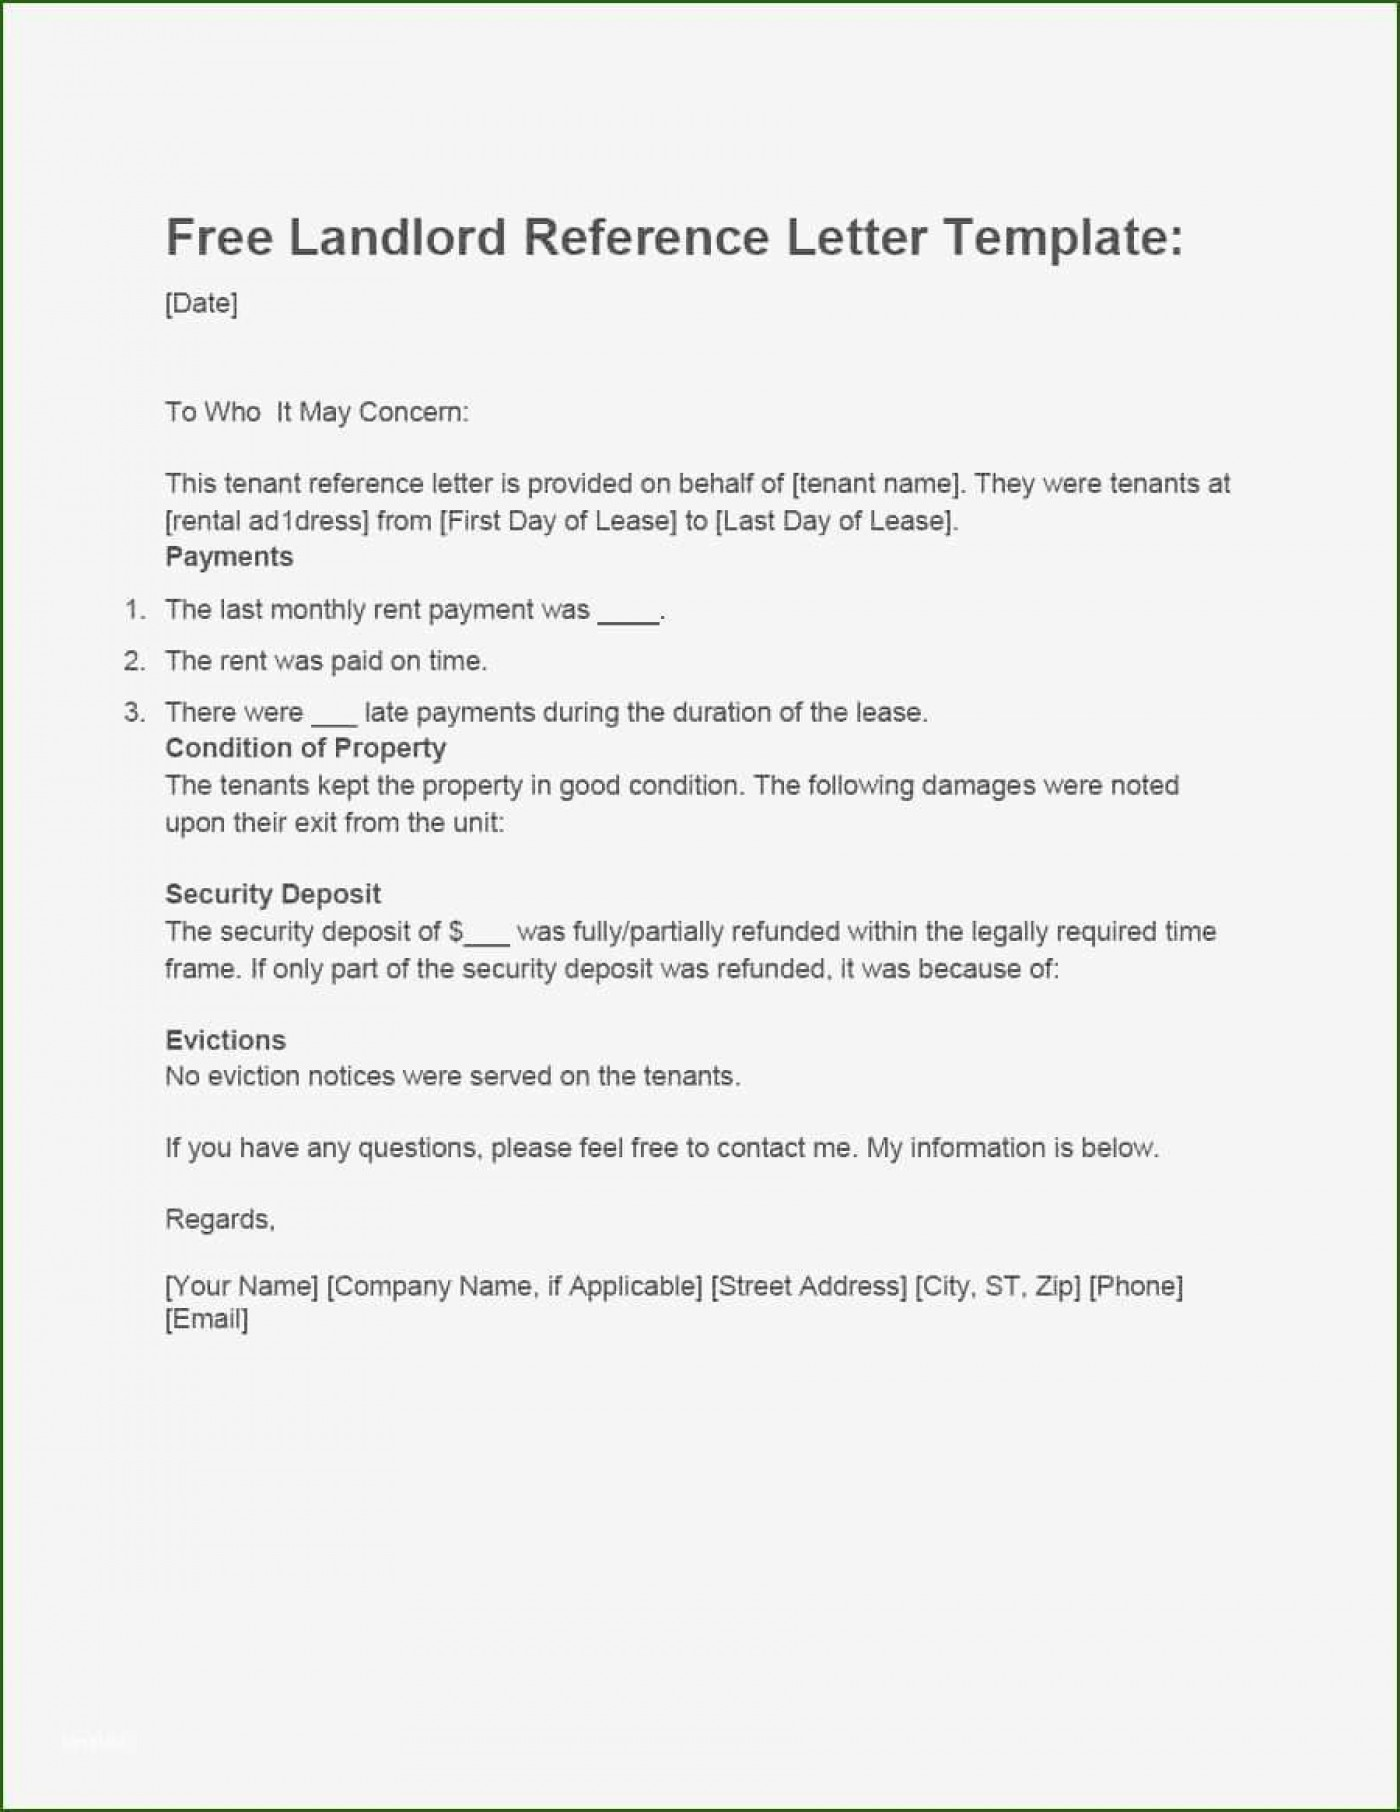 001 Magnificent Free Reference Letter Template For Landlord High Definition  Rental1400